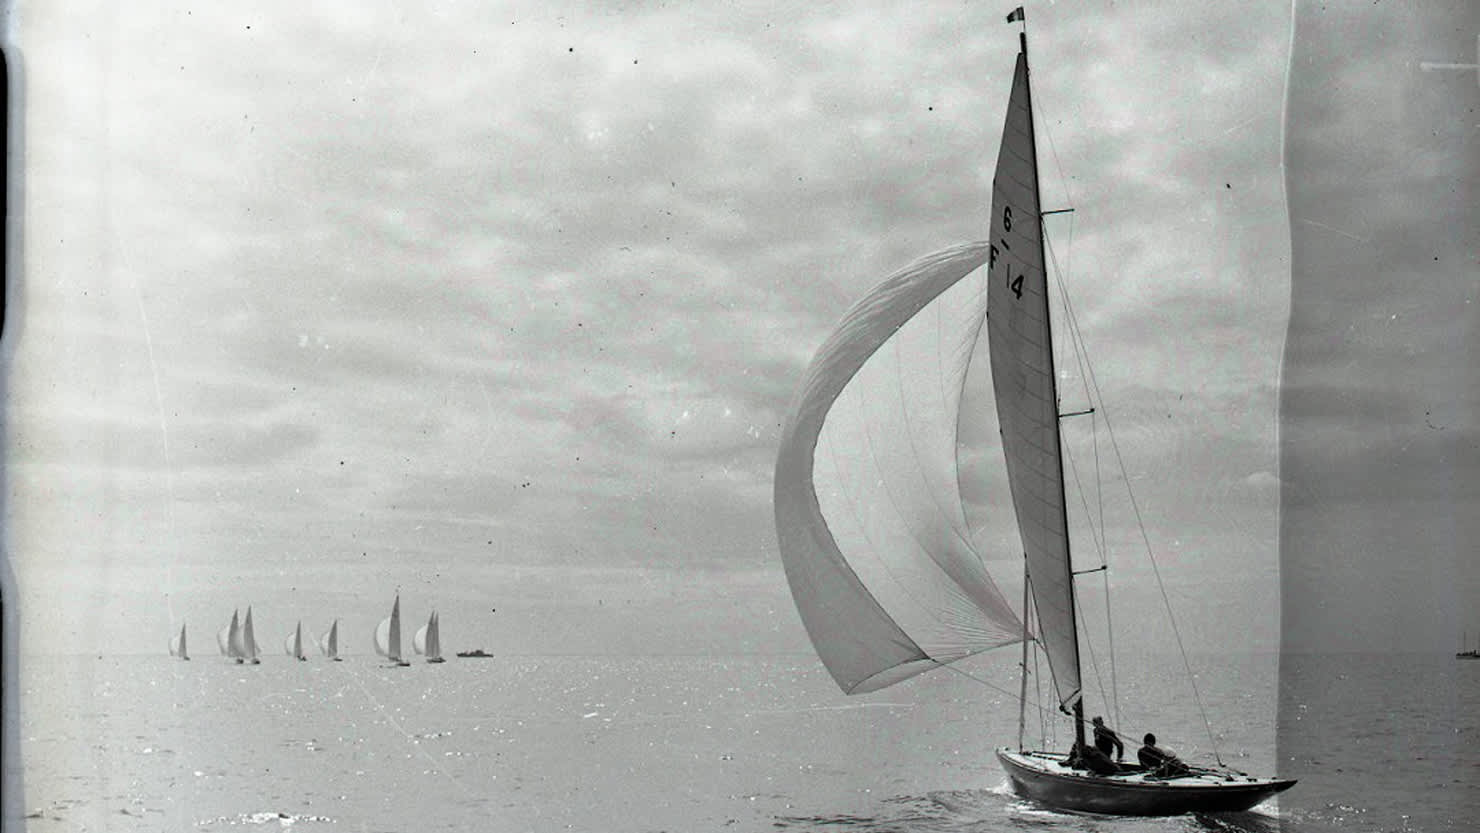 Olympic yachting, Torbay, 4 August 1948. (Image Ref: 1418/3129) © Mirrorpix